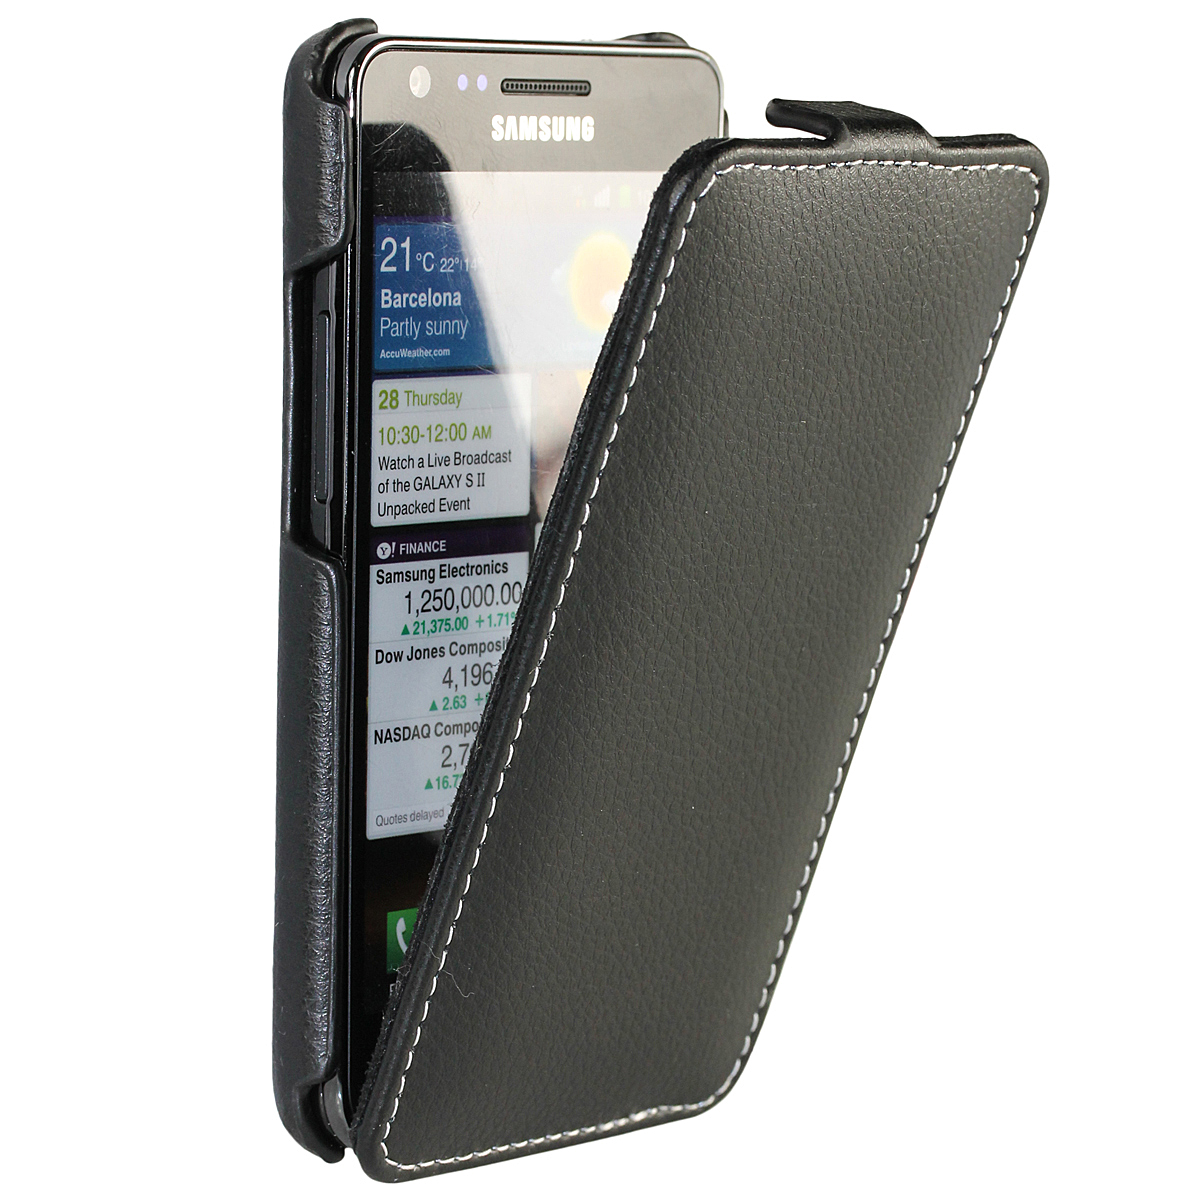 iGadgitz Black Genuine Leather Flip Case Cover Holder for Samsung i9100 Galaxy S2 Android Smartphone Mobile Phone